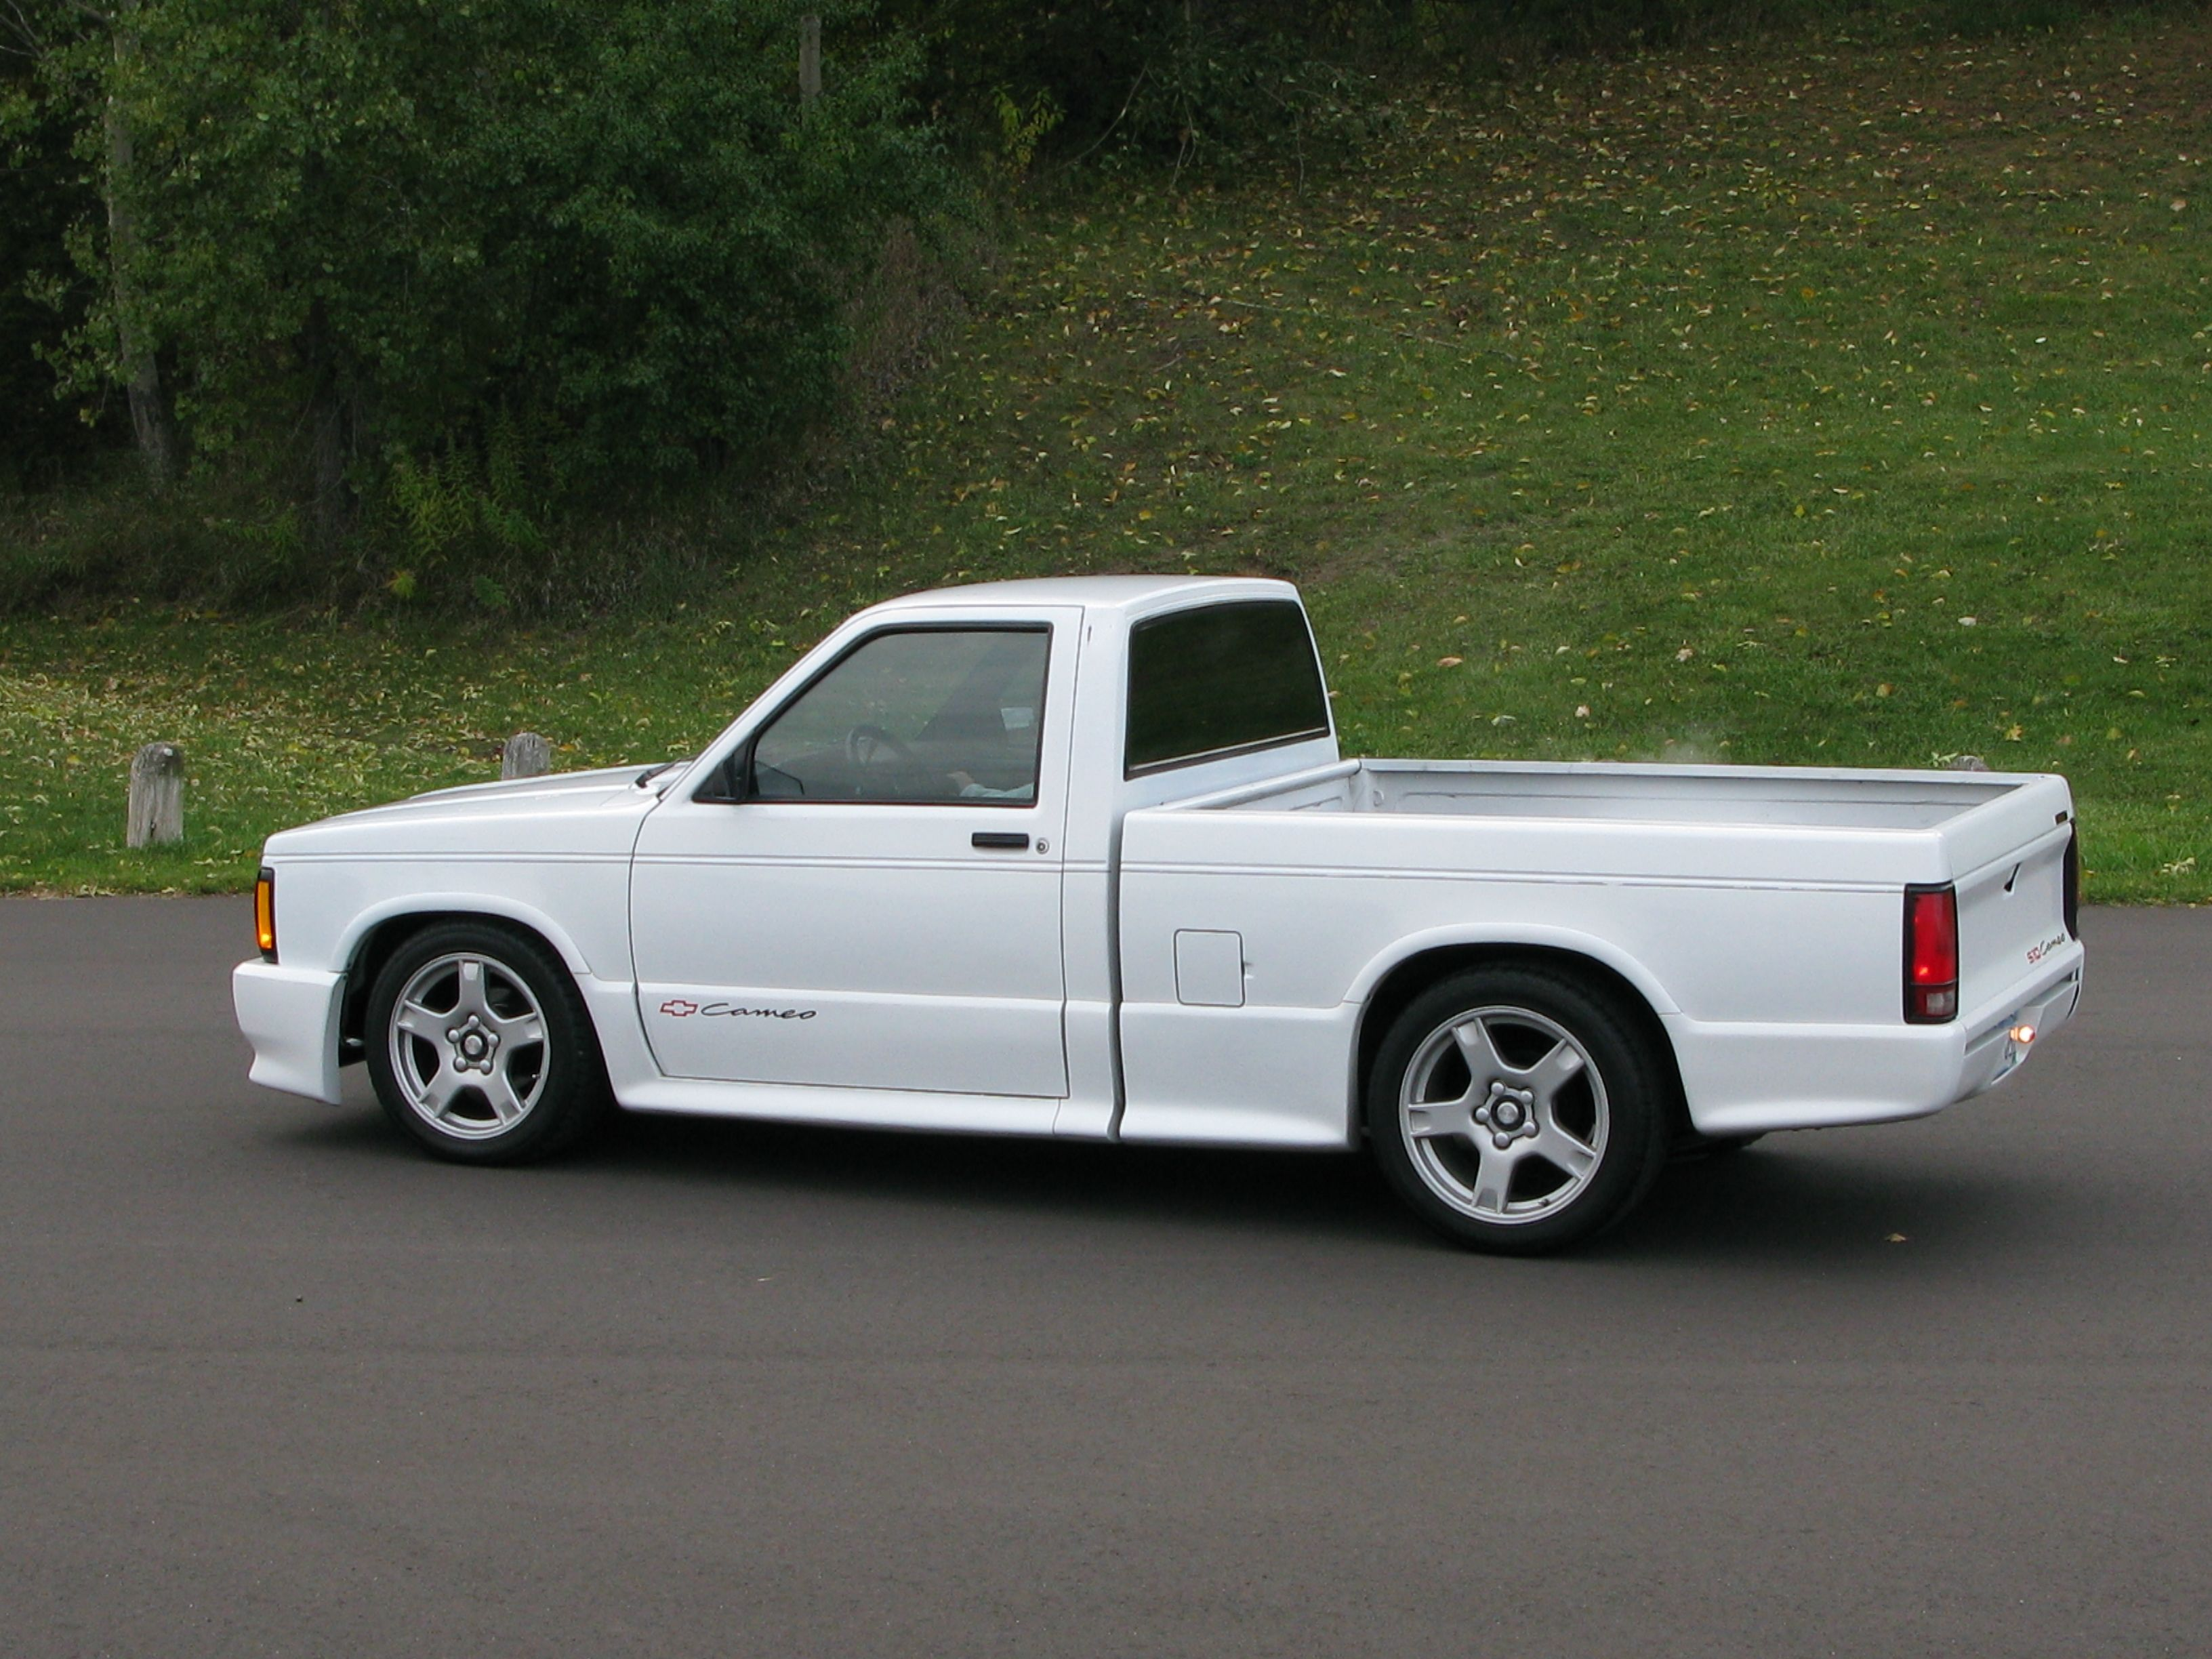 FOR SALE: 1991 S10 Cameo  Lowered with C5 wheels, quick-ratio